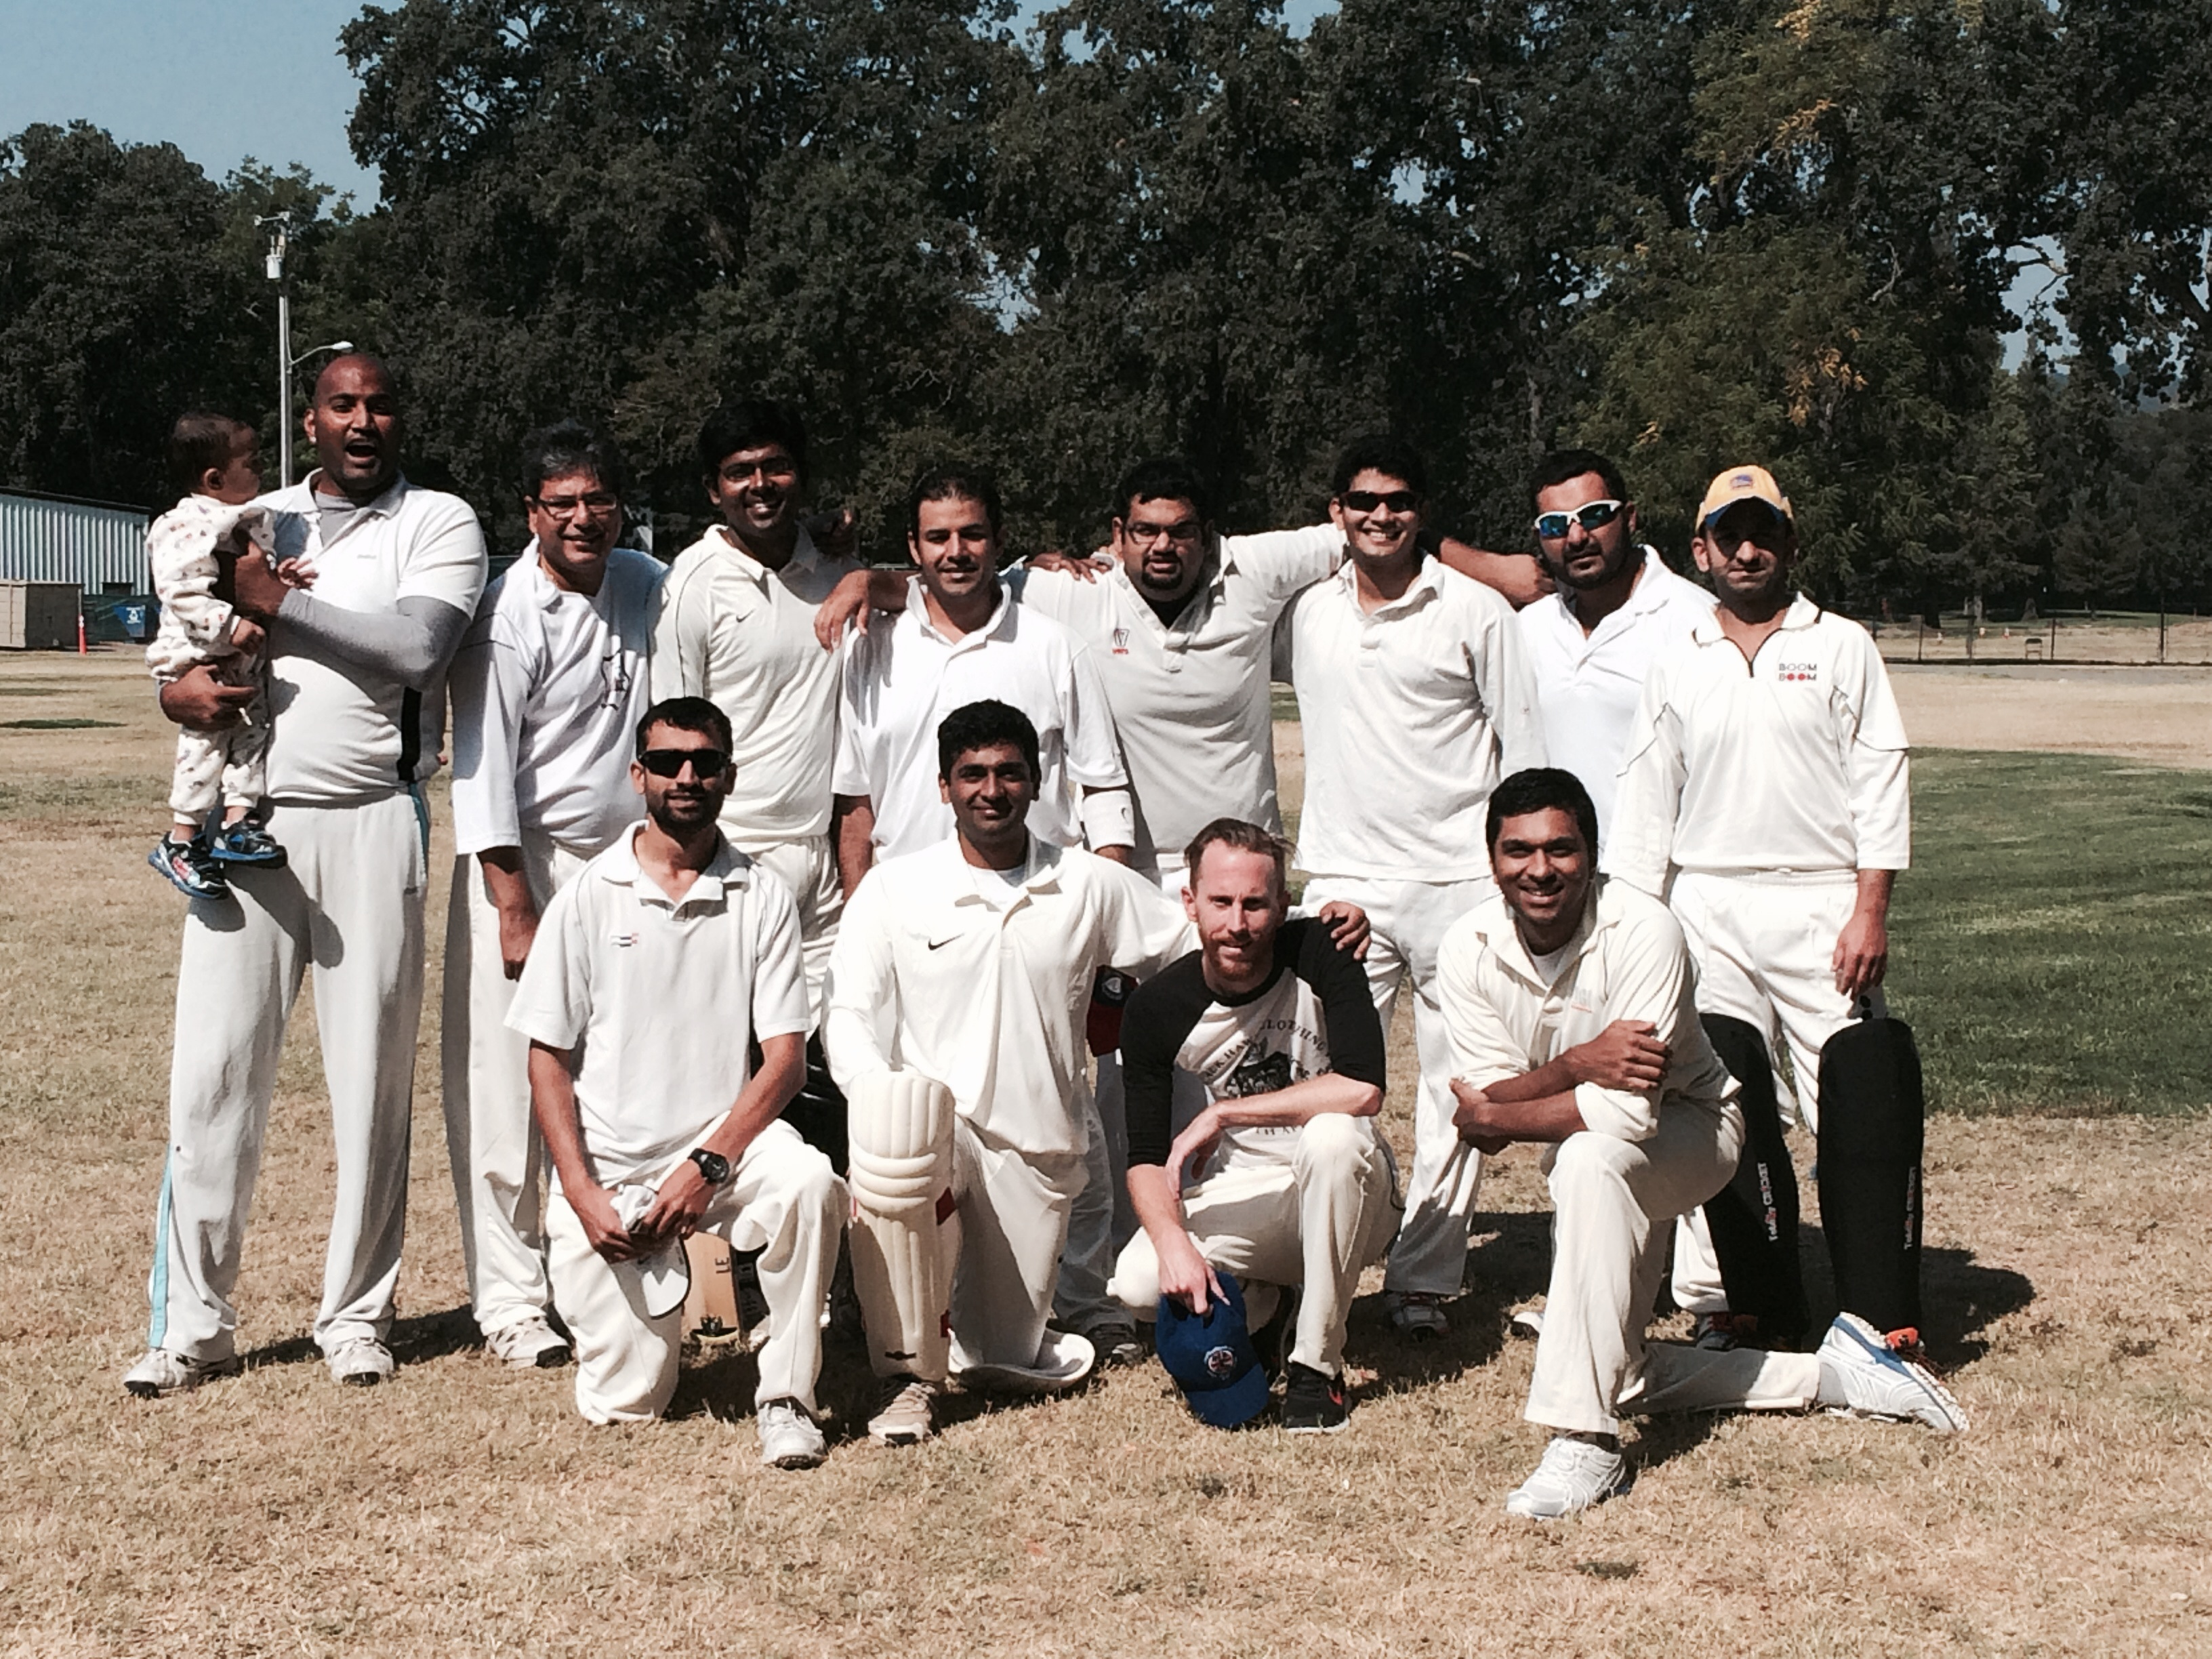 The visiting Thunberbolts team captained by Raj Padhi (back row, second from the left) who currently lead the Bay Area Cricket Alliance Summer T20 League